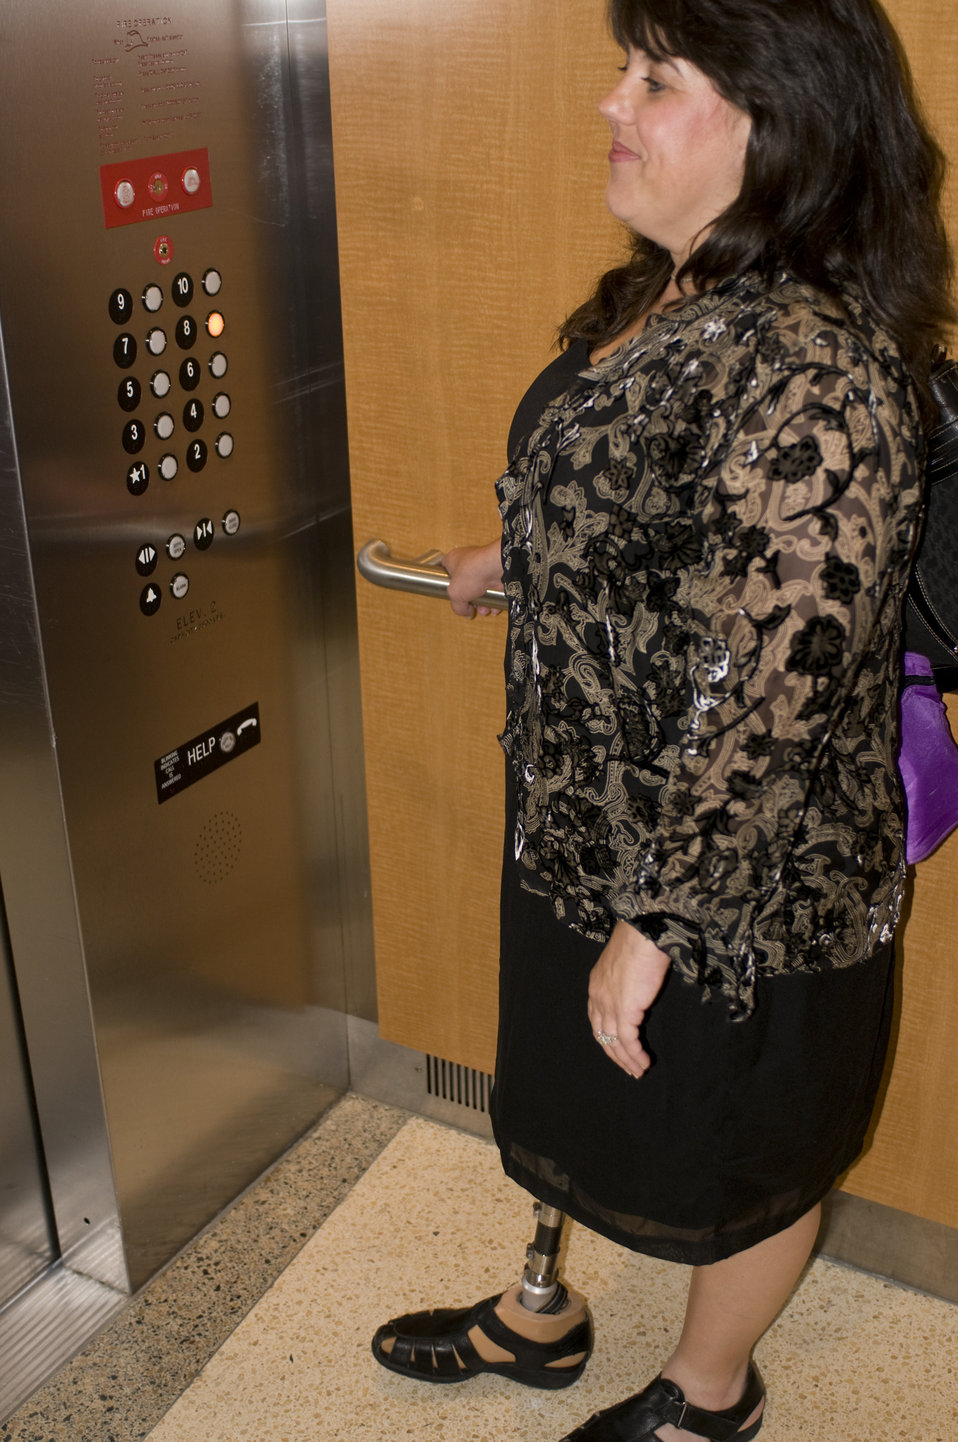 After having boarded this elevator, the woman pictured in this photograph had pressed the desired button, choosing the eighth floor as her d